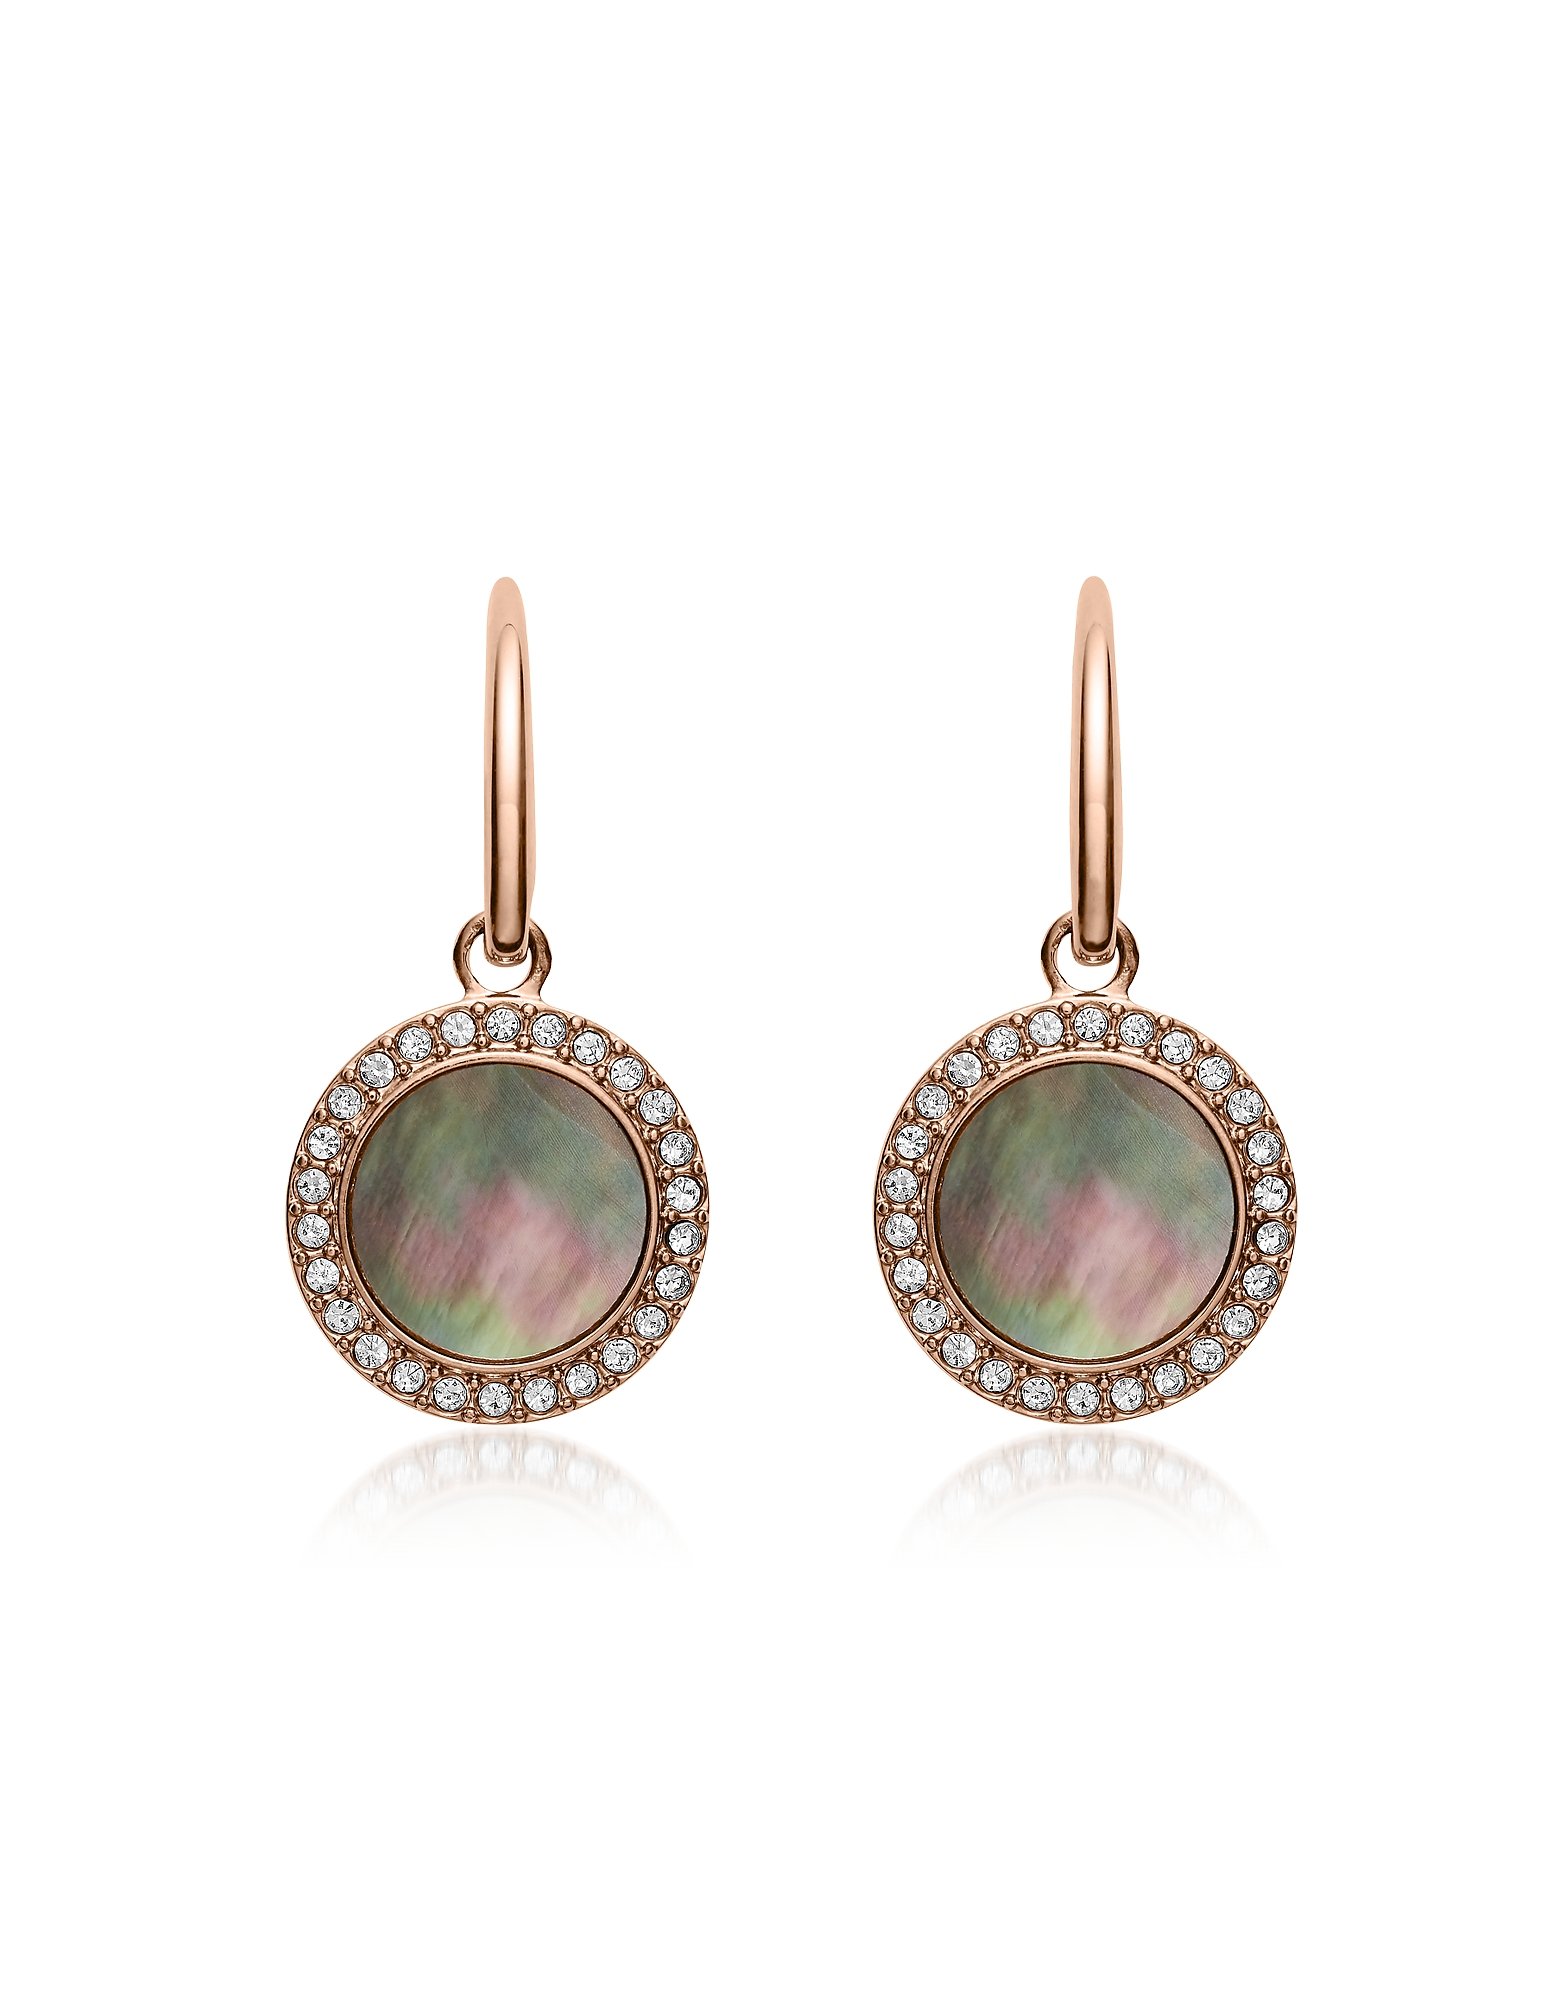 Gray Mother of Pearl Glitz Drop Earrings, Rose gold